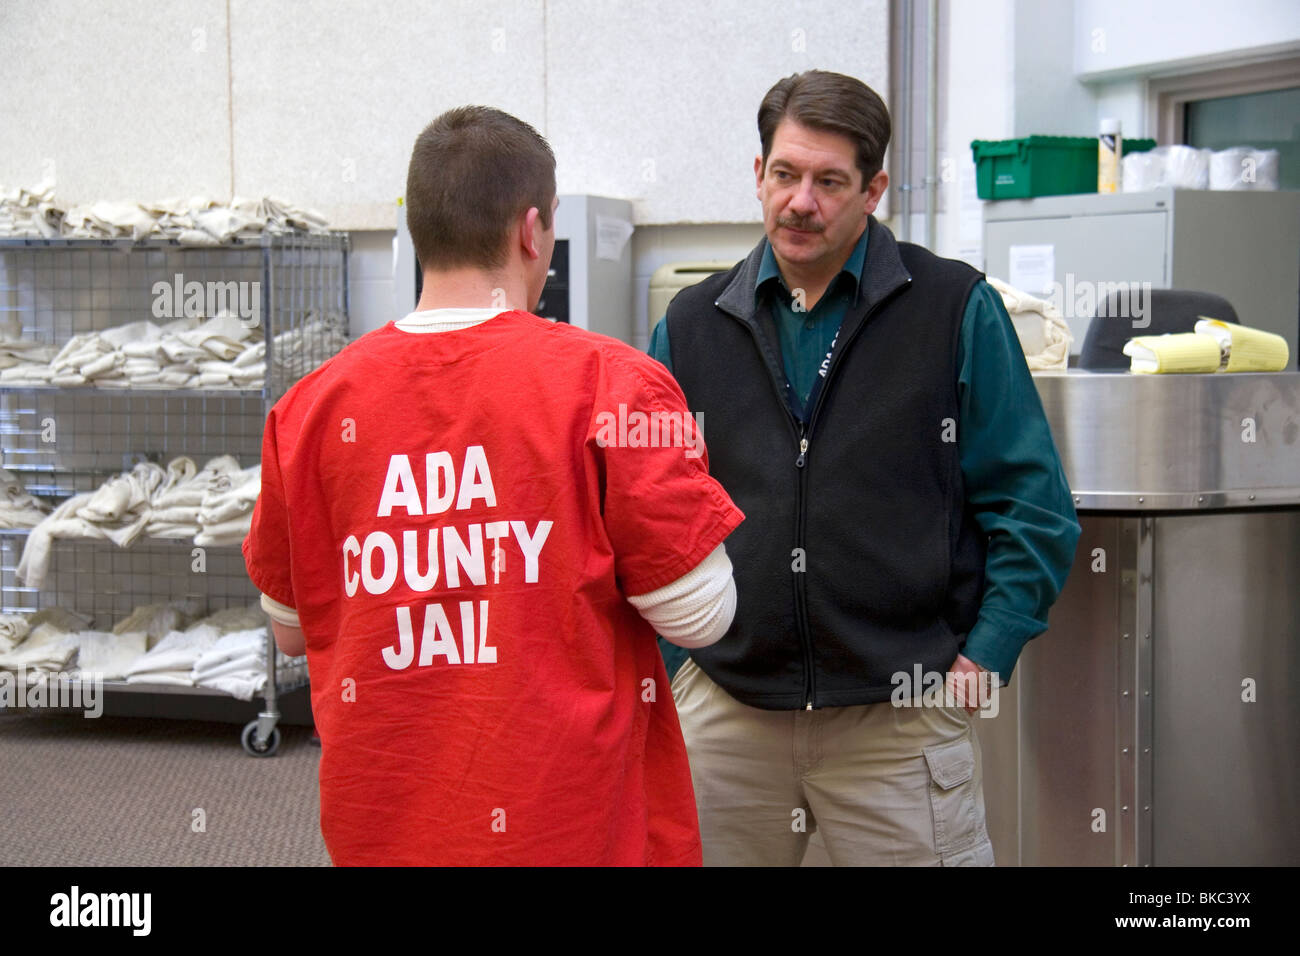 County Jail Stock Photos & County Jail Stock Images - Alamy